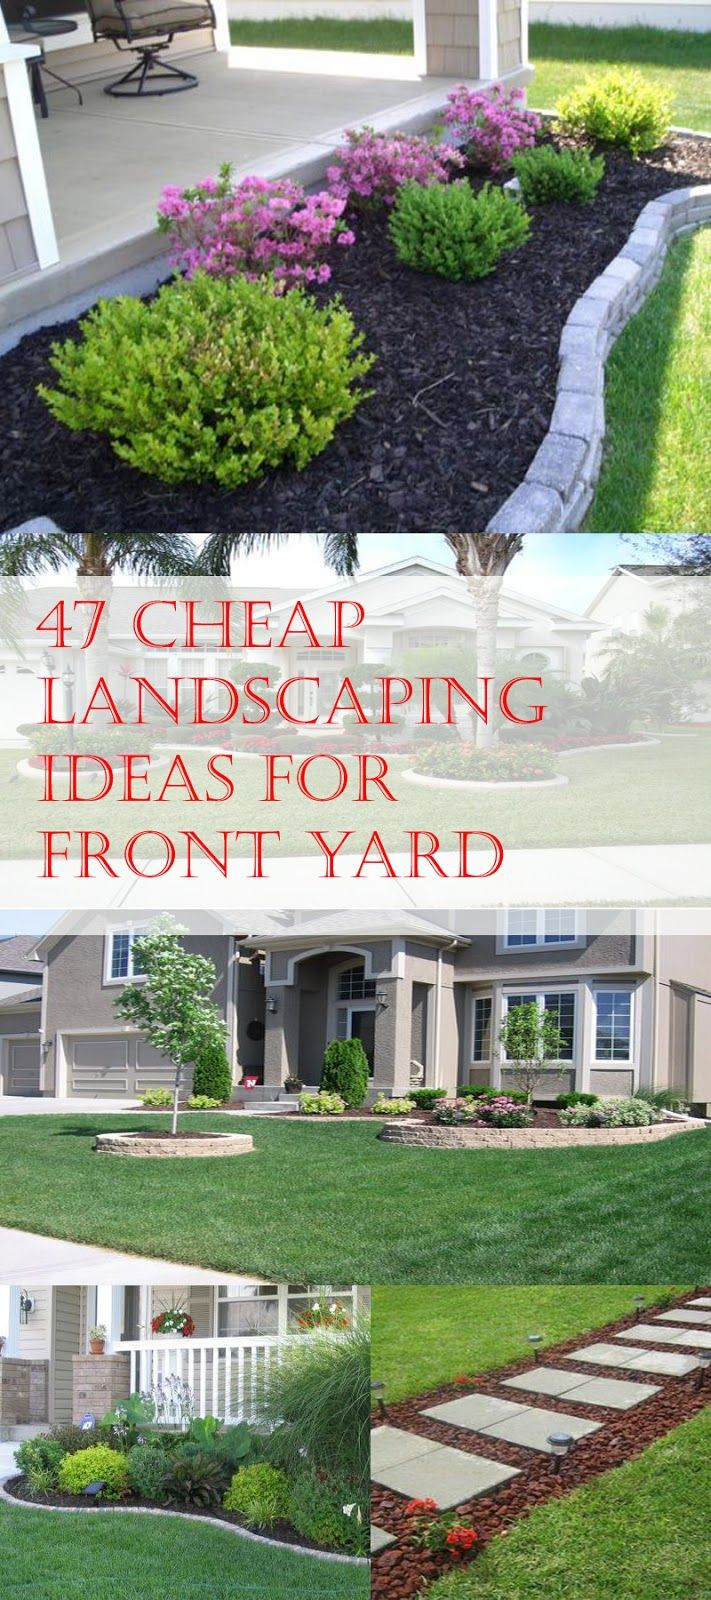 47 cheap landscaping ideas for front yard cheap on backyard landscaping ideas with minimum budget id=62531